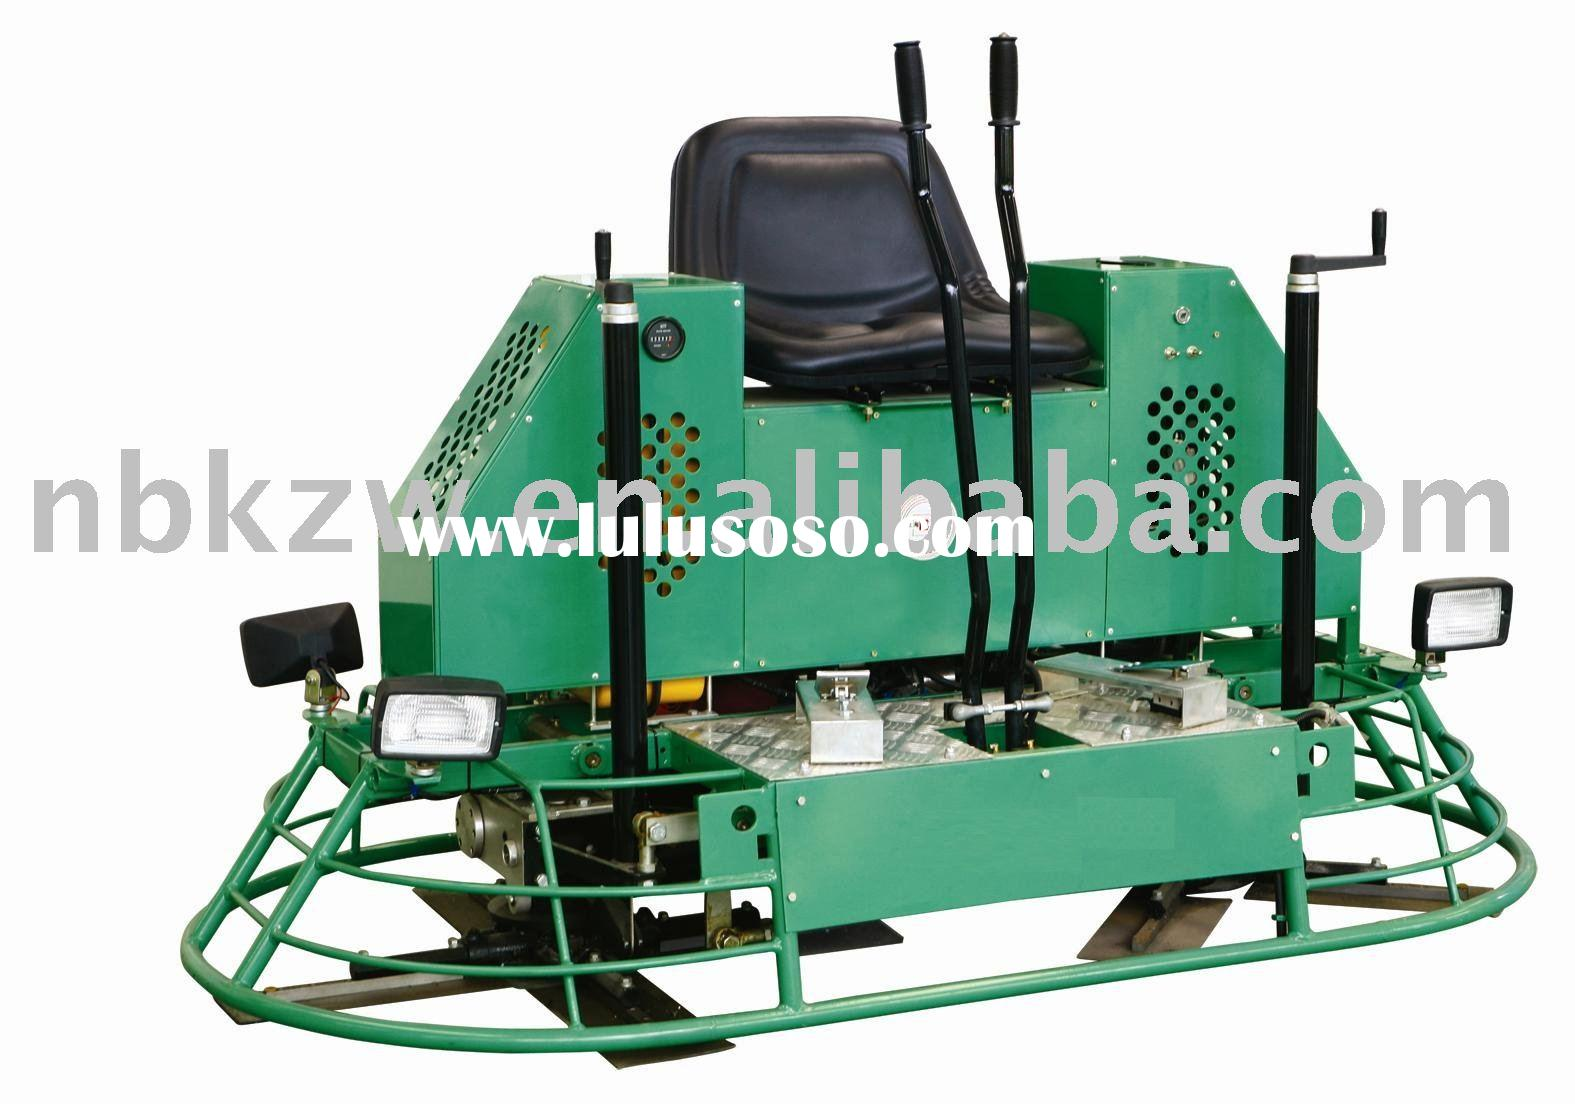 Robin eh12 2d gasoline tamping rammer for sale price for Blind robin fish